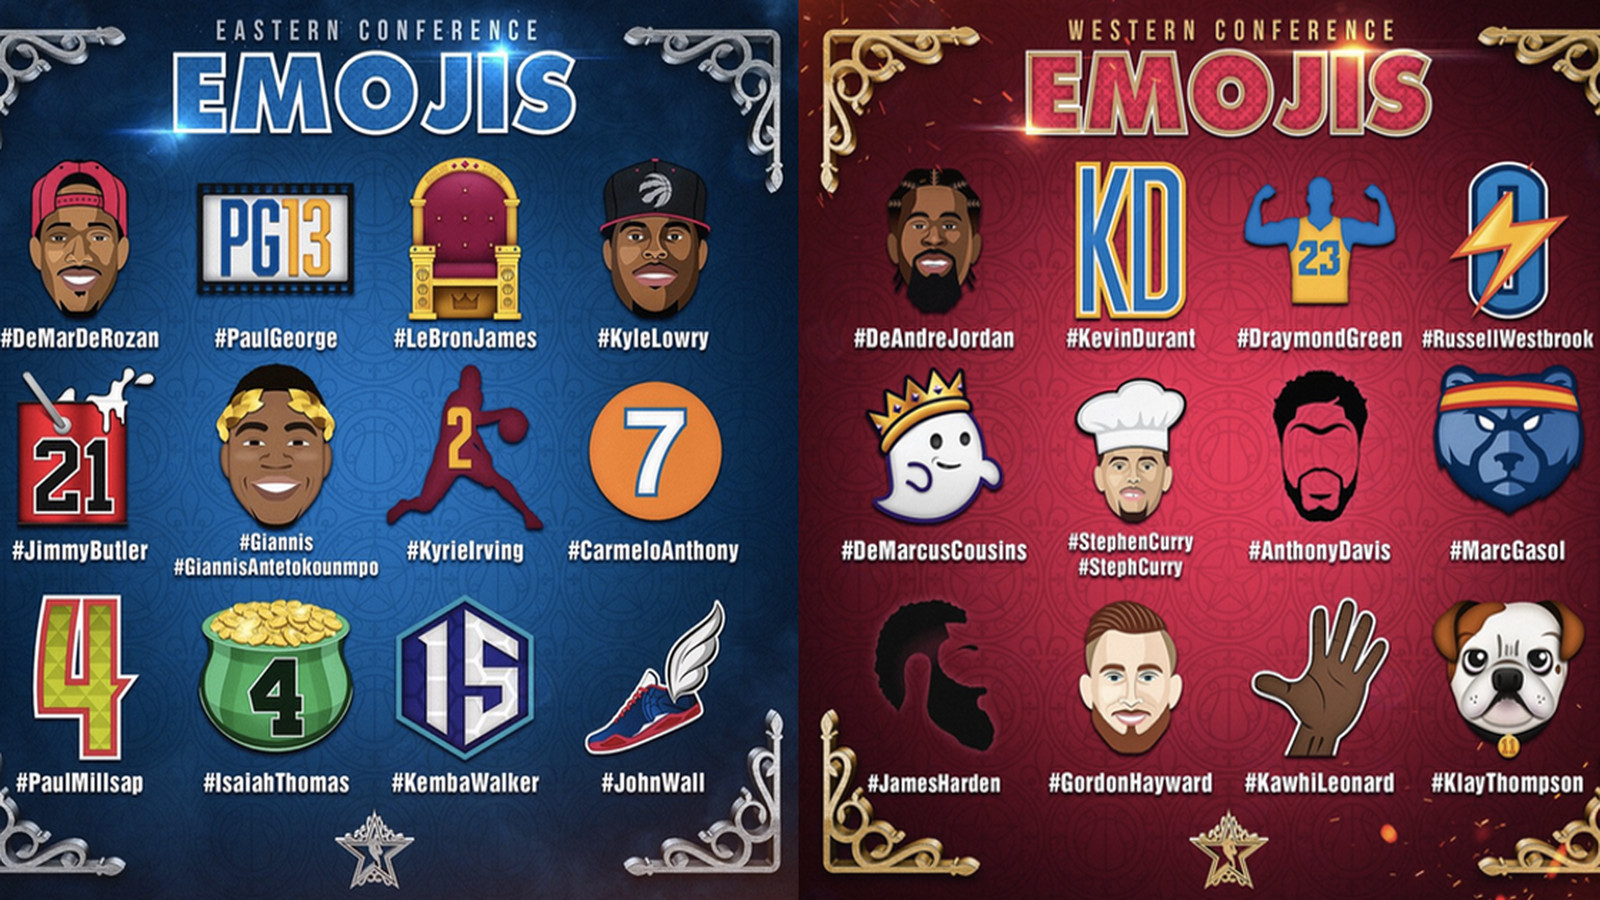 The Custom Nba All Star Player Emojis Ranked Sbnation Com